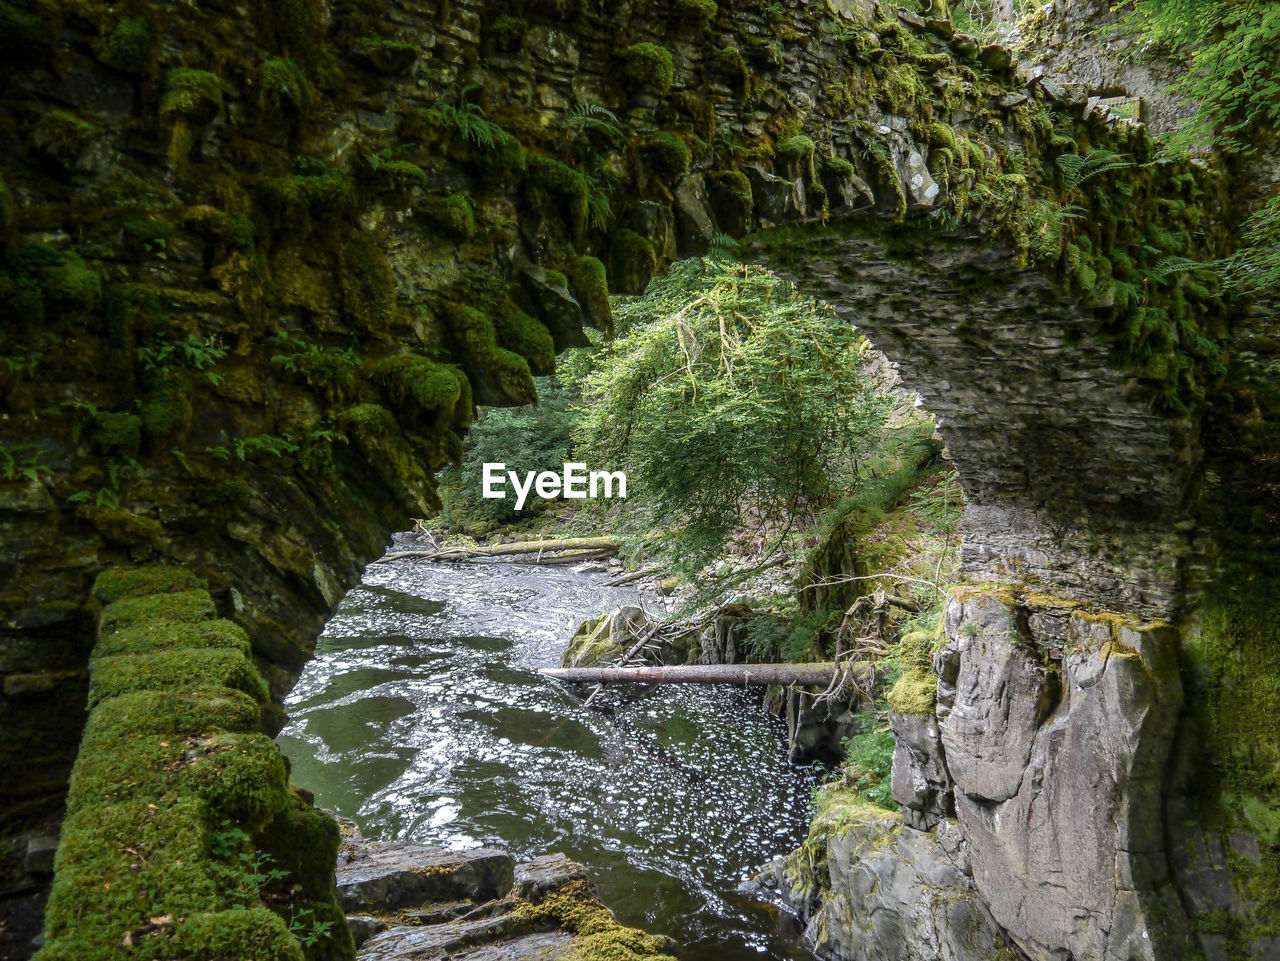 waterfall, nature, no people, river, rock - object, scenics, water, beauty in nature, motion, outdoors, moss, forest, day, tree